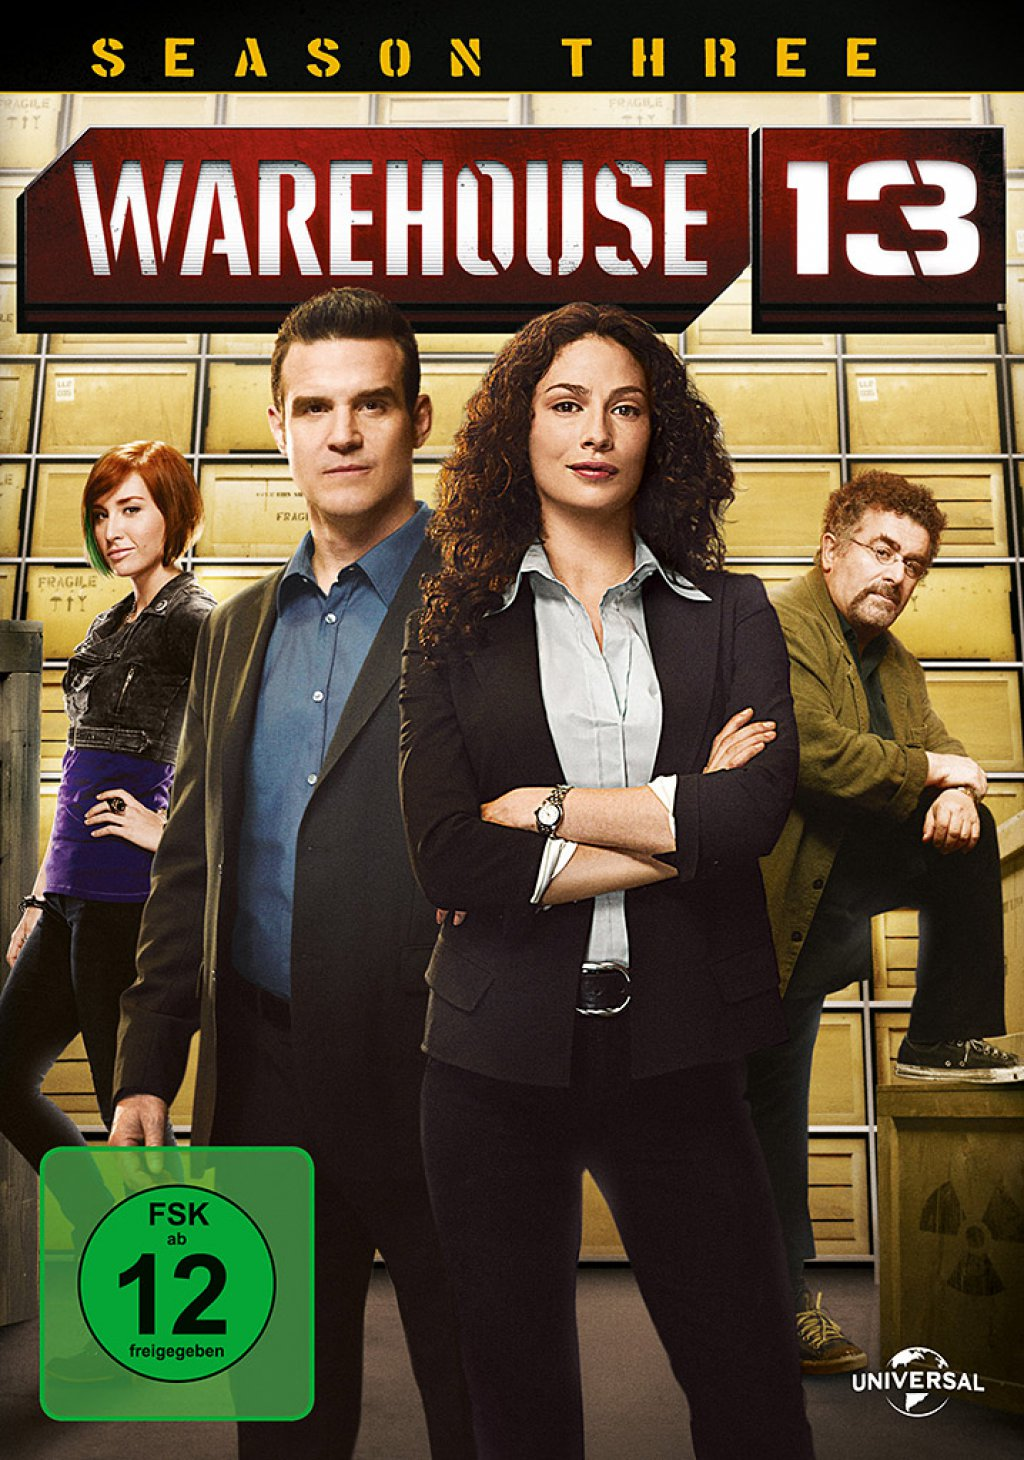 Warehouse 13 - Season 3 (DVD)